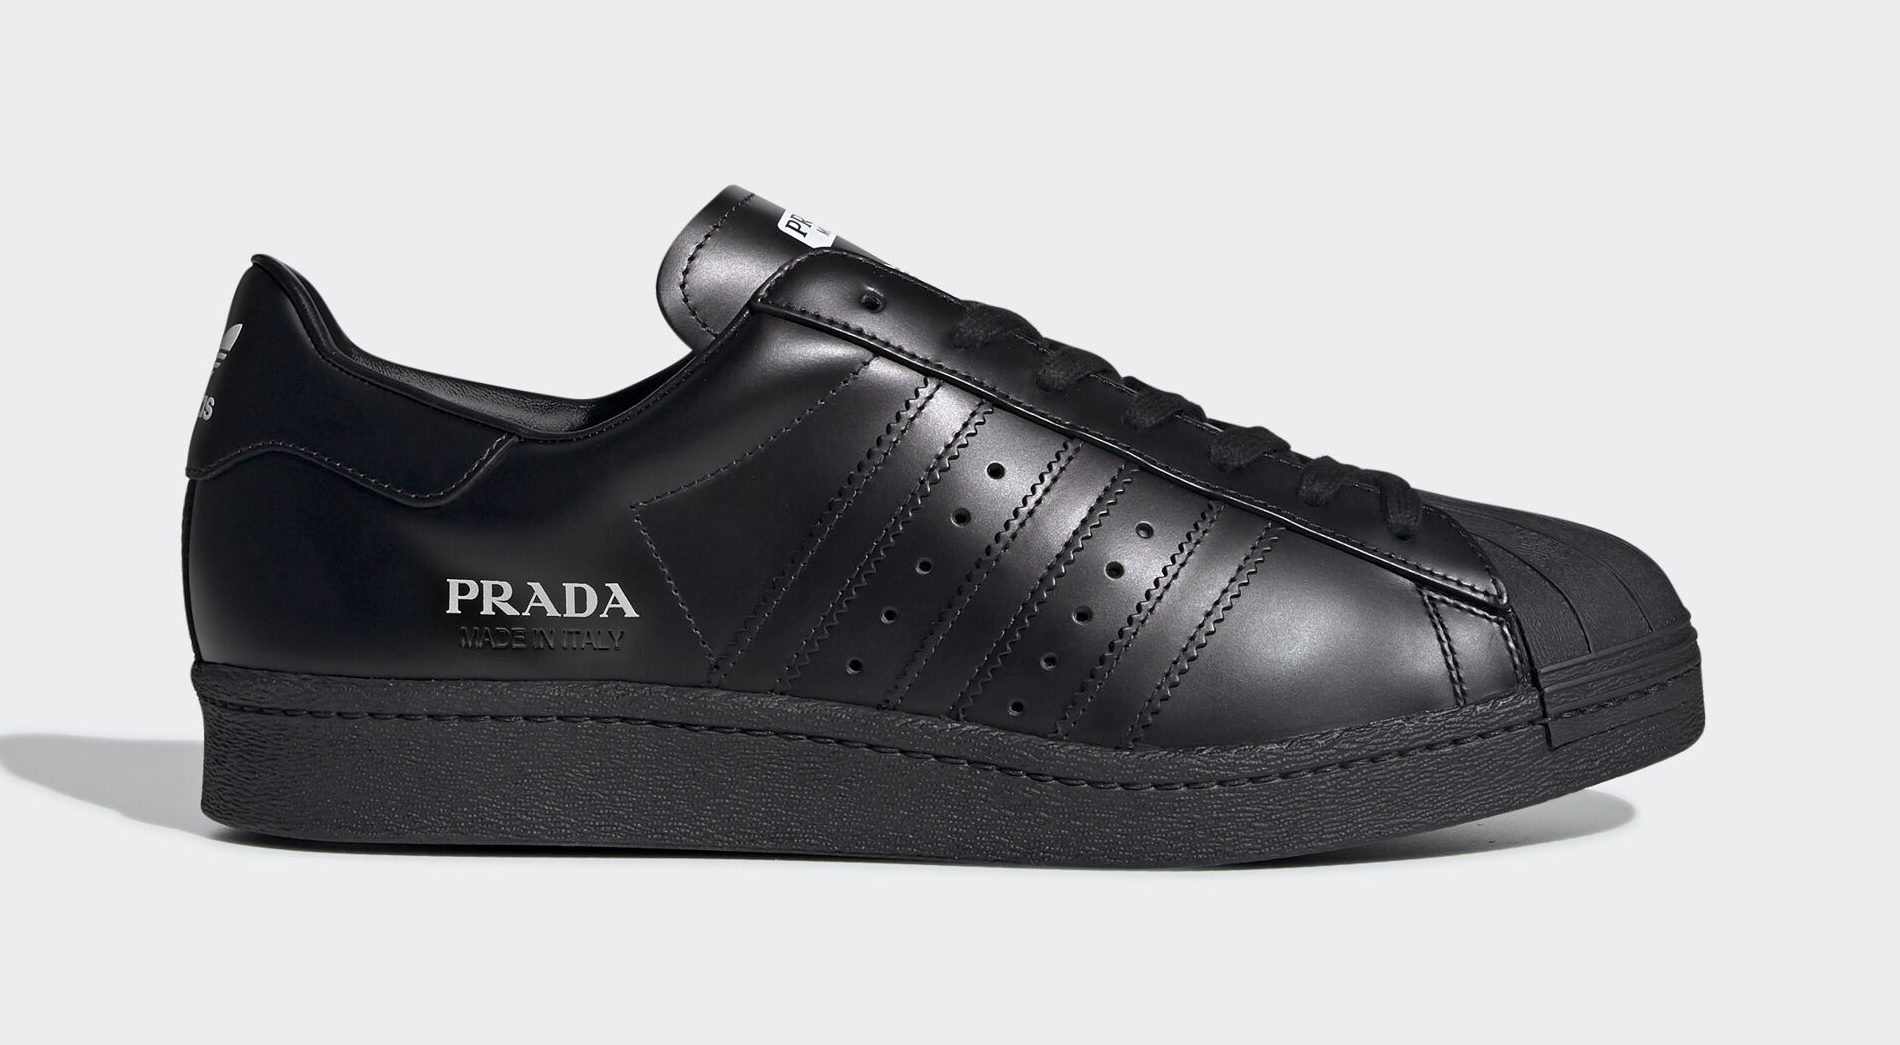 Prada x Adidas Superstar